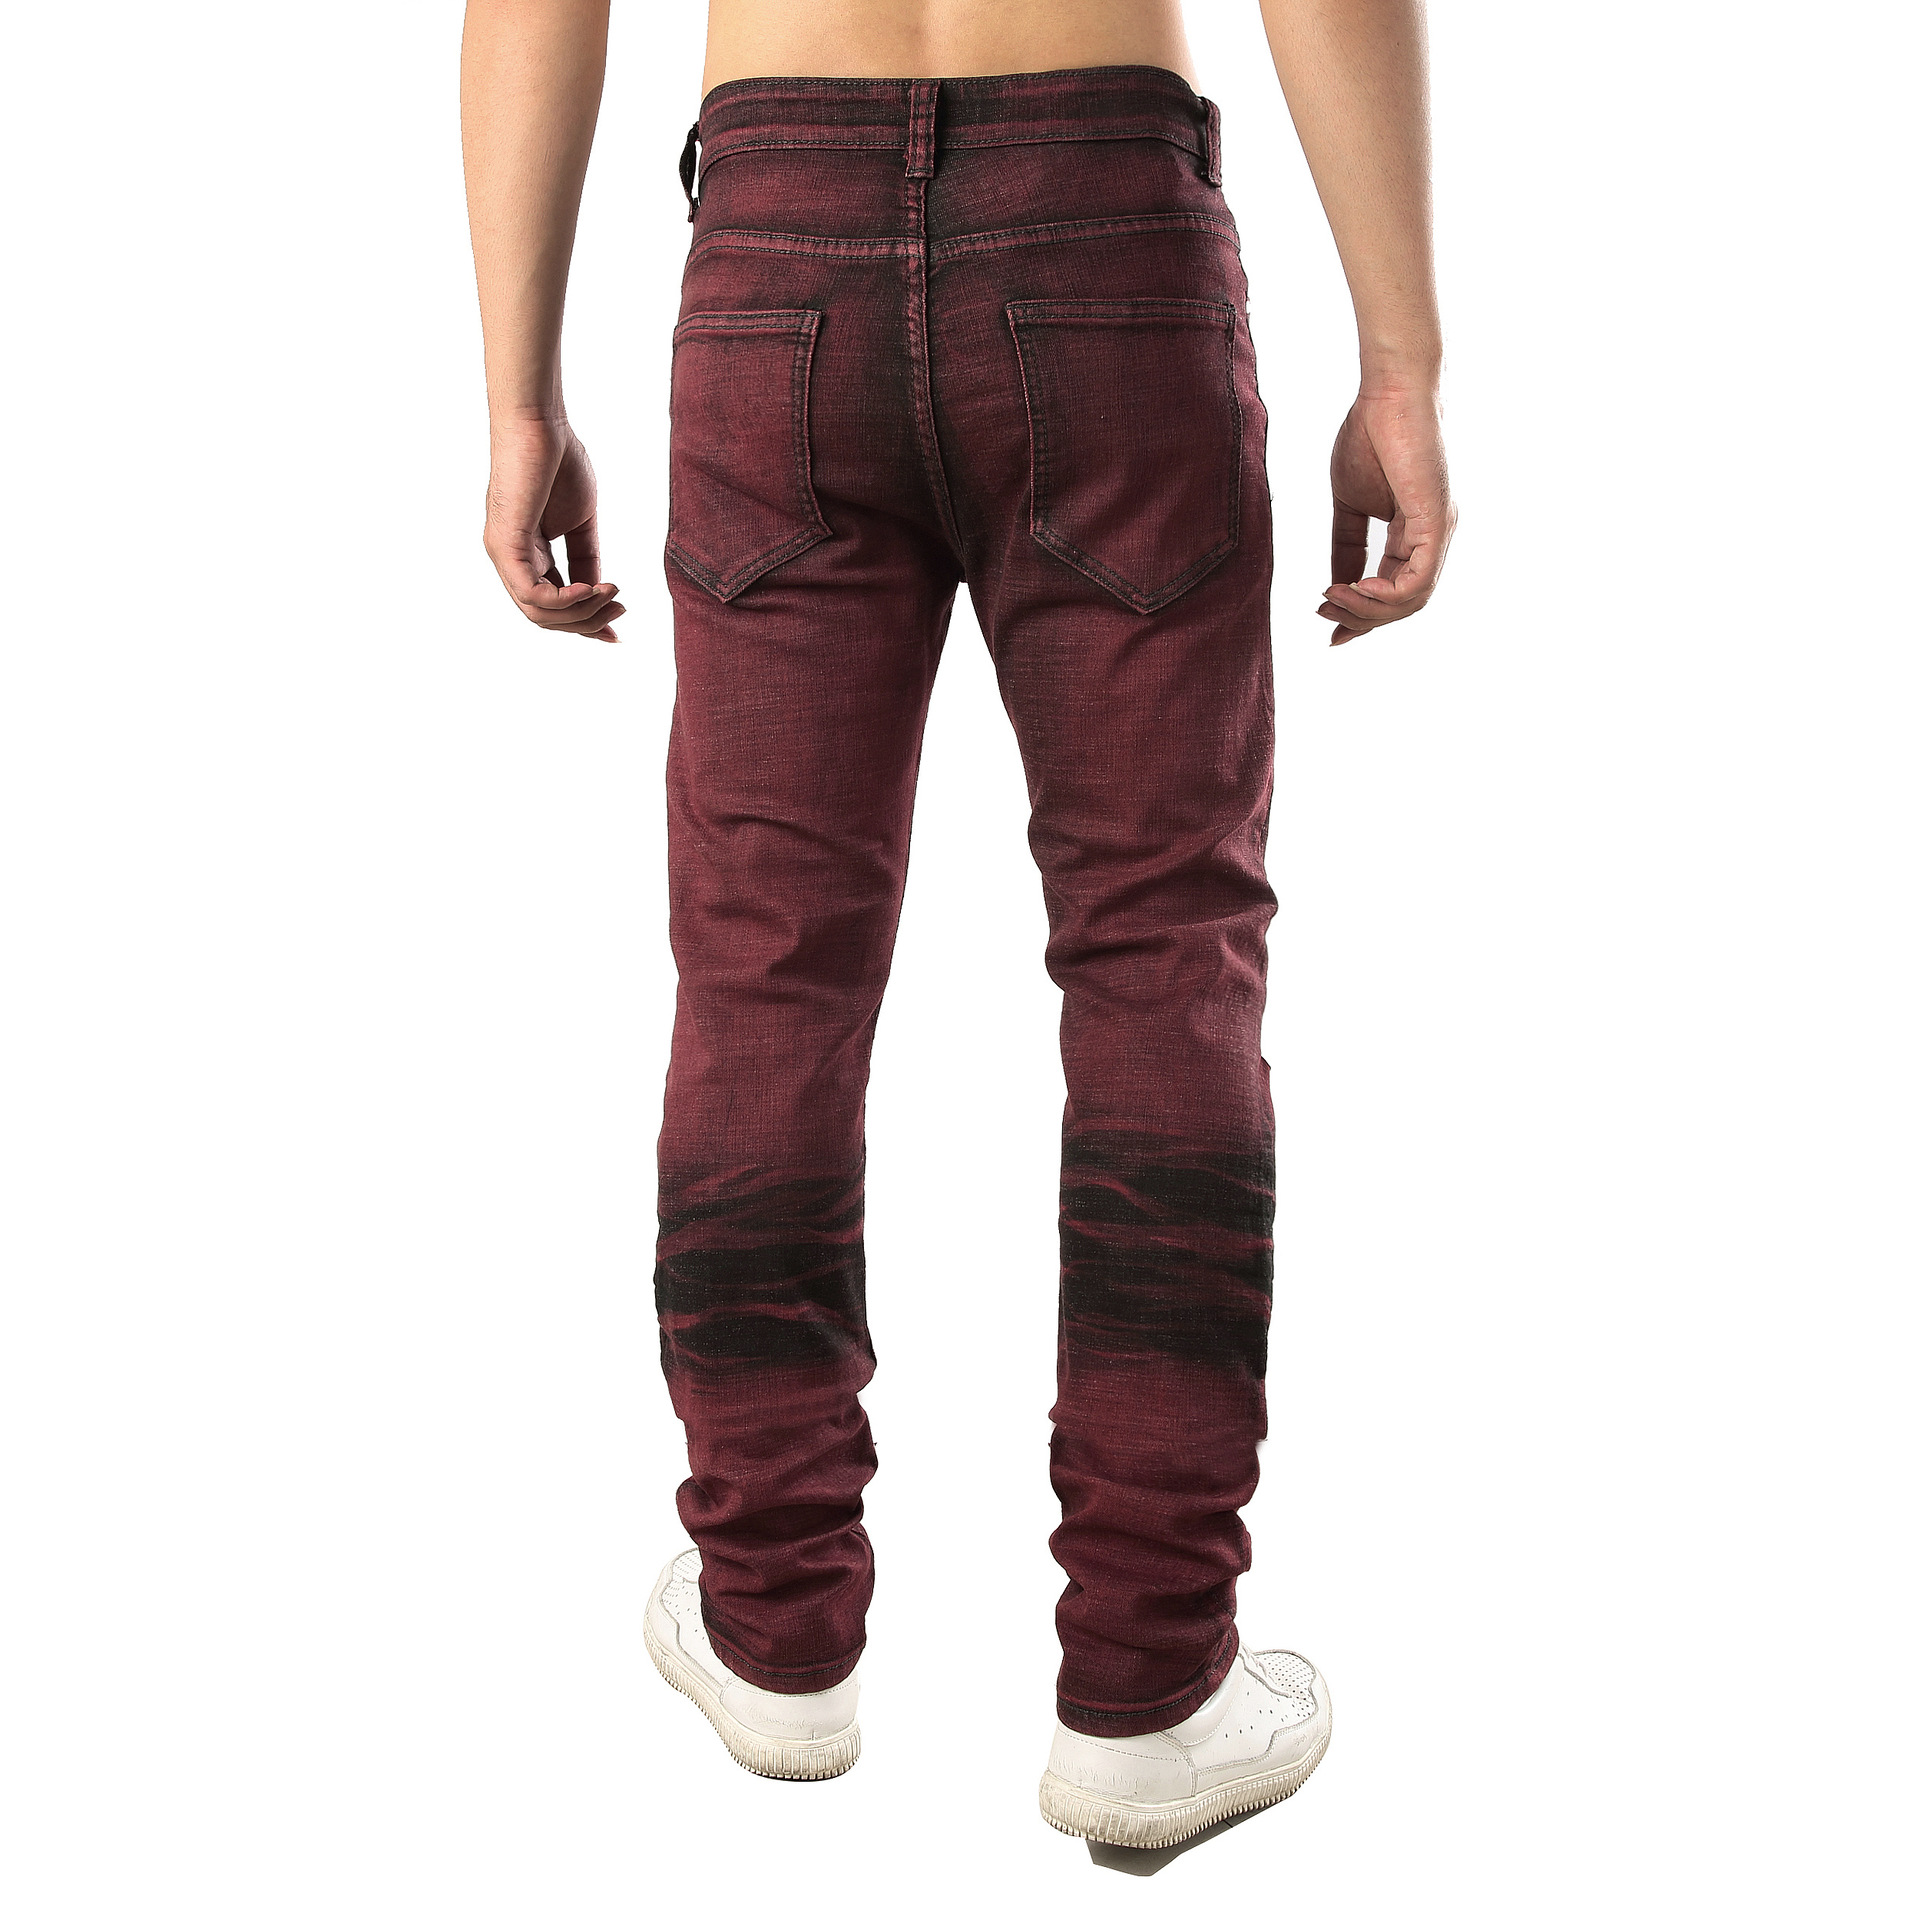 f5d584776f8 Men Plus Size Men s Jeans Fashion Brown Red Distressed Jeans Slim Stretch  Hip Hop Ripped Jeans Men Streetwear Pants 42